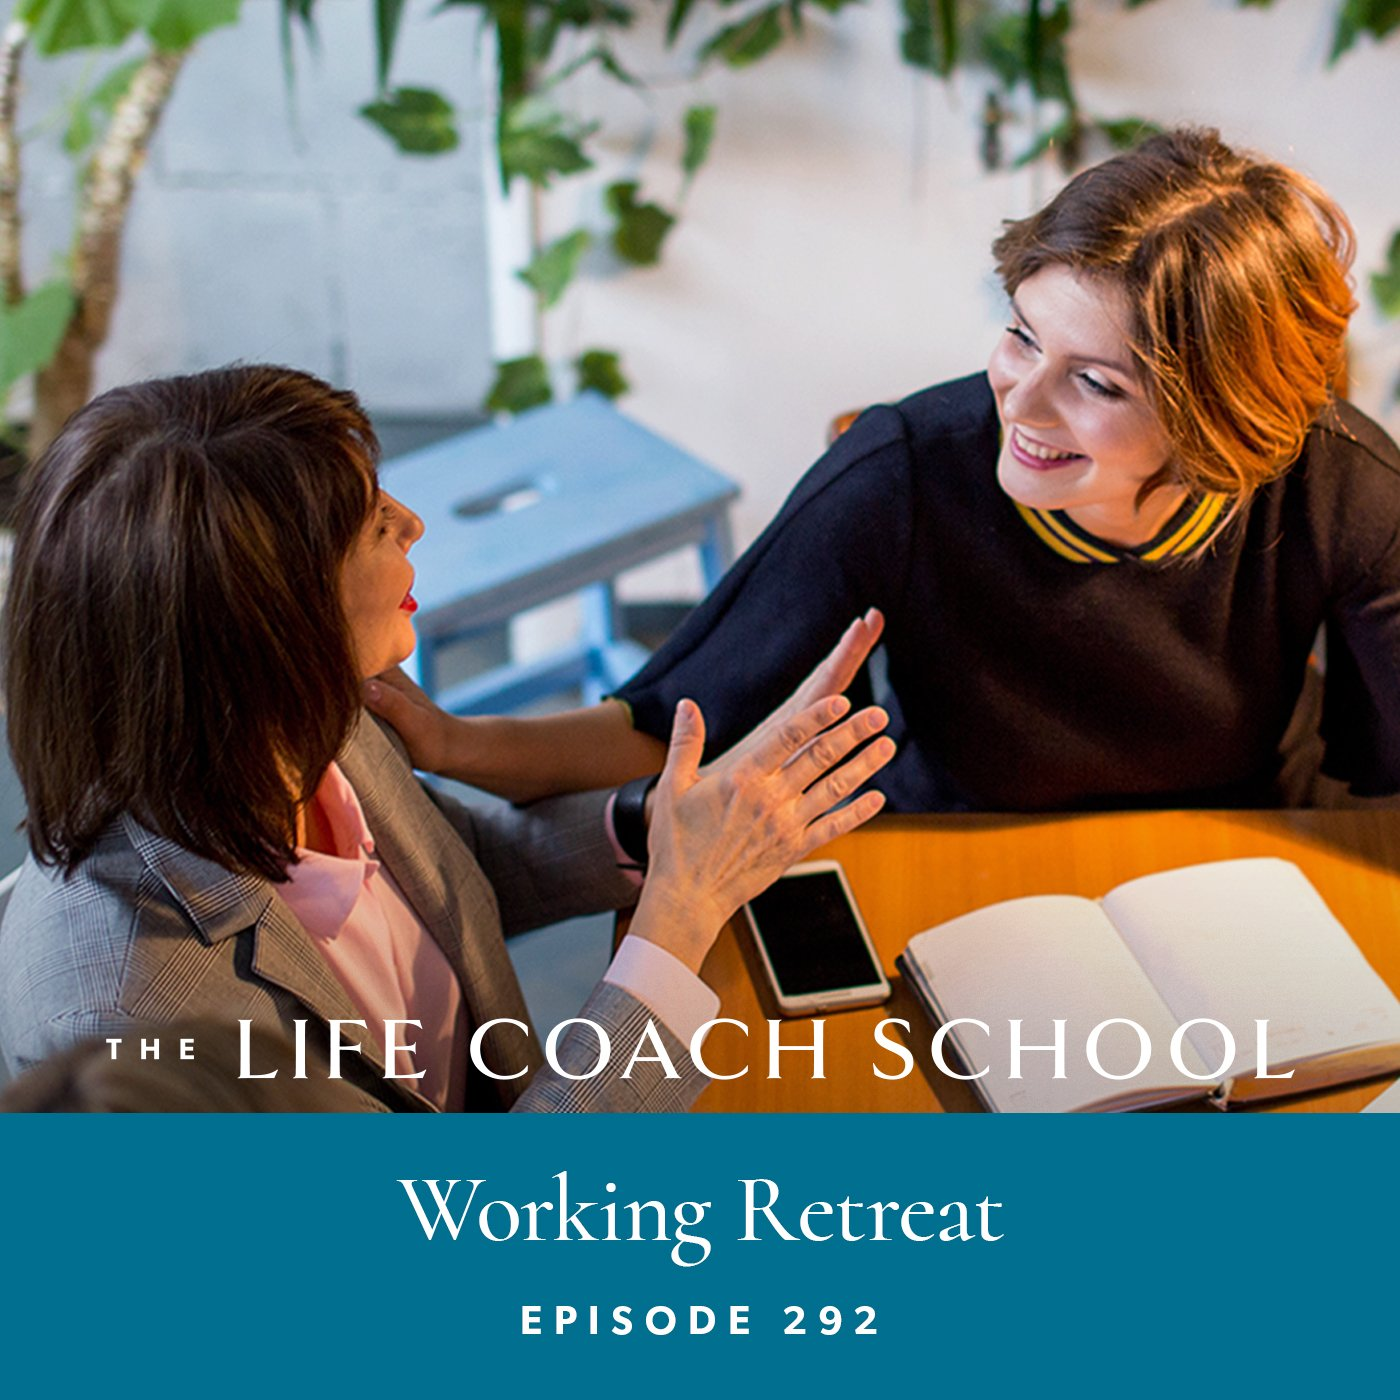 The Life Coach School Podcast with Brooke Castillo | Episode 292 | Working Retreat